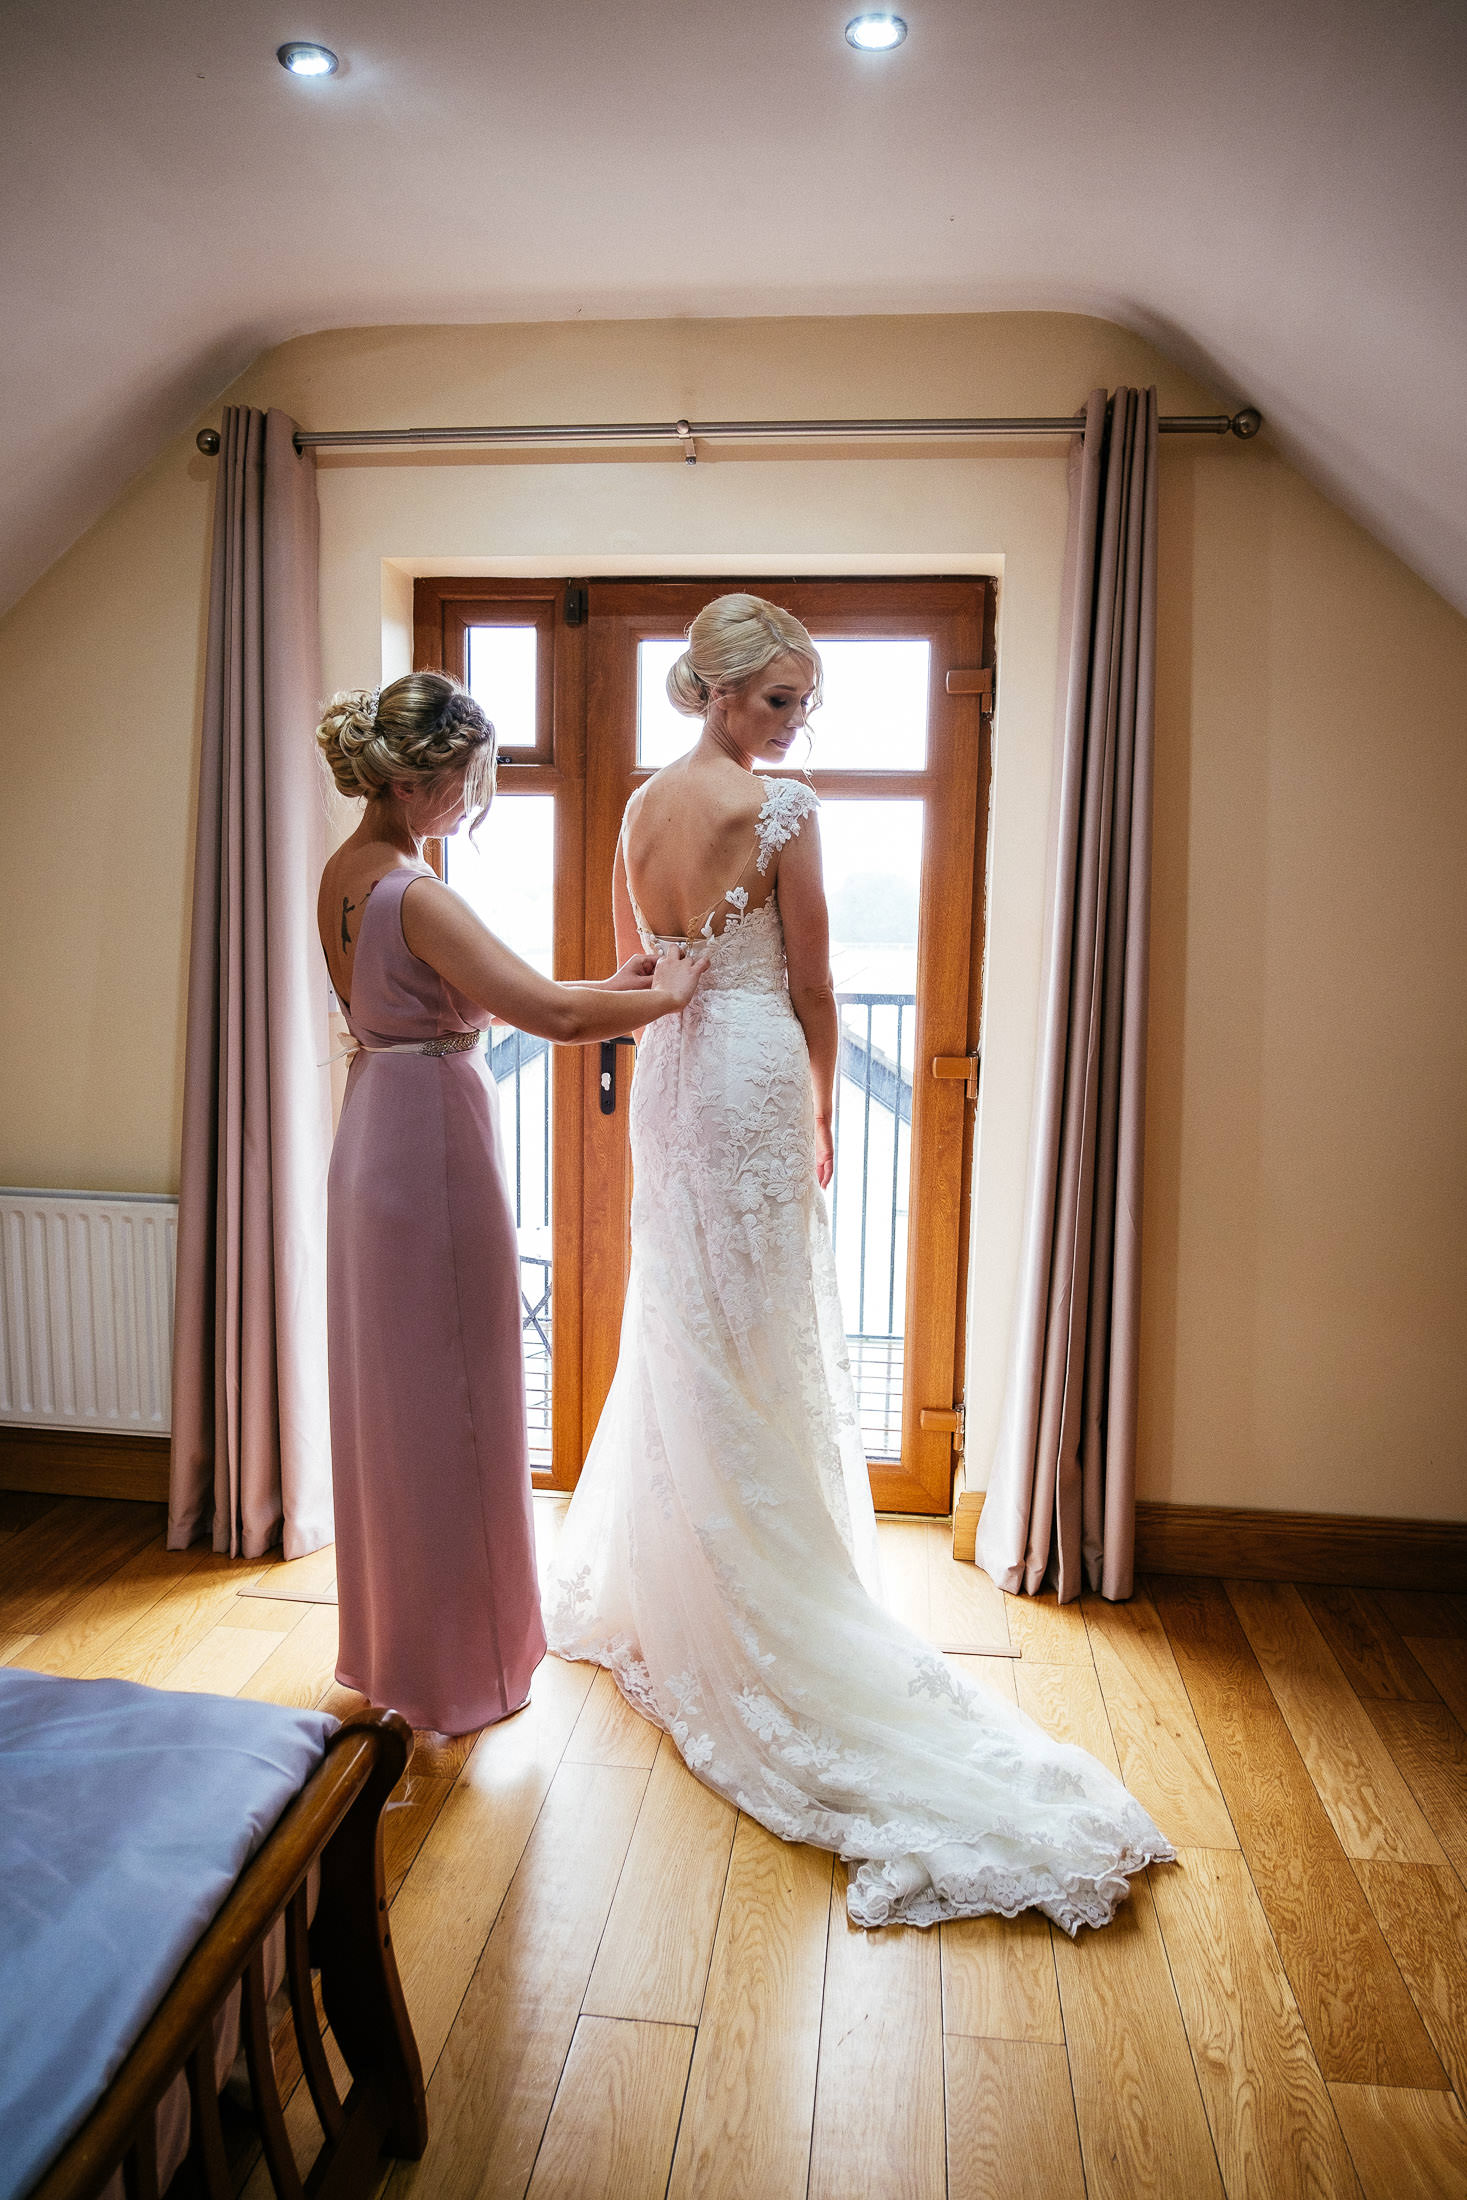 bride being fitted into dress